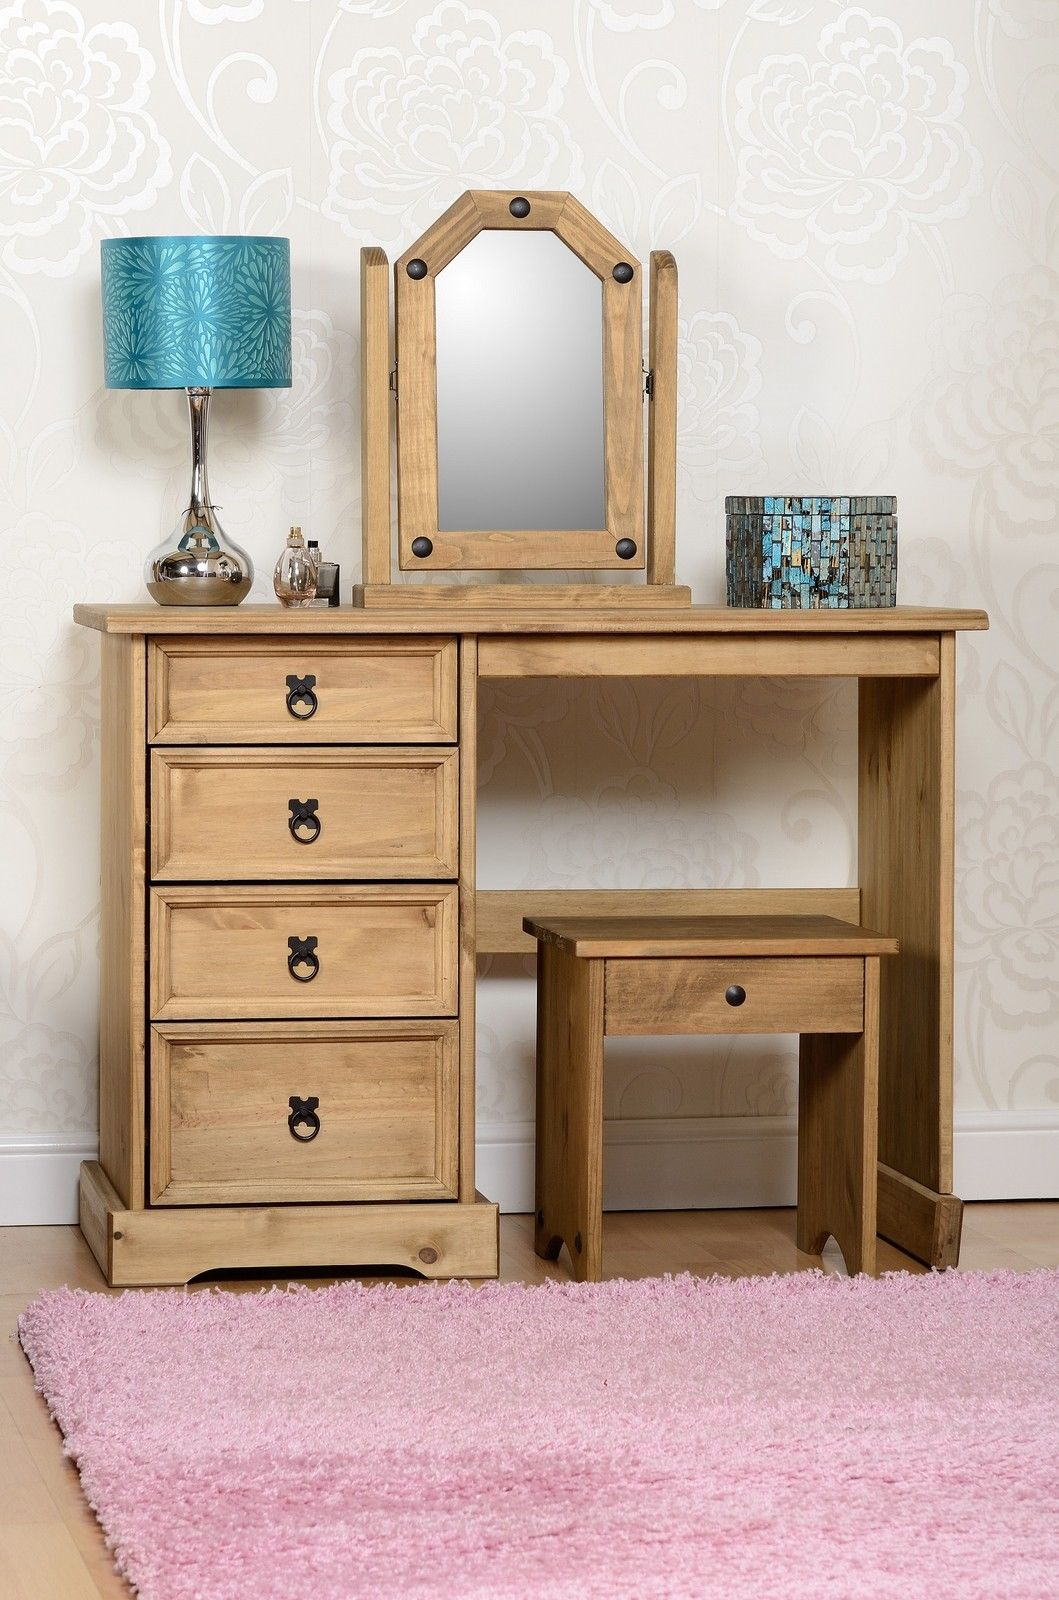 Dressing Table Chairs And Stools: Corona Wooden Dressing Table Set With Stool And Mirror